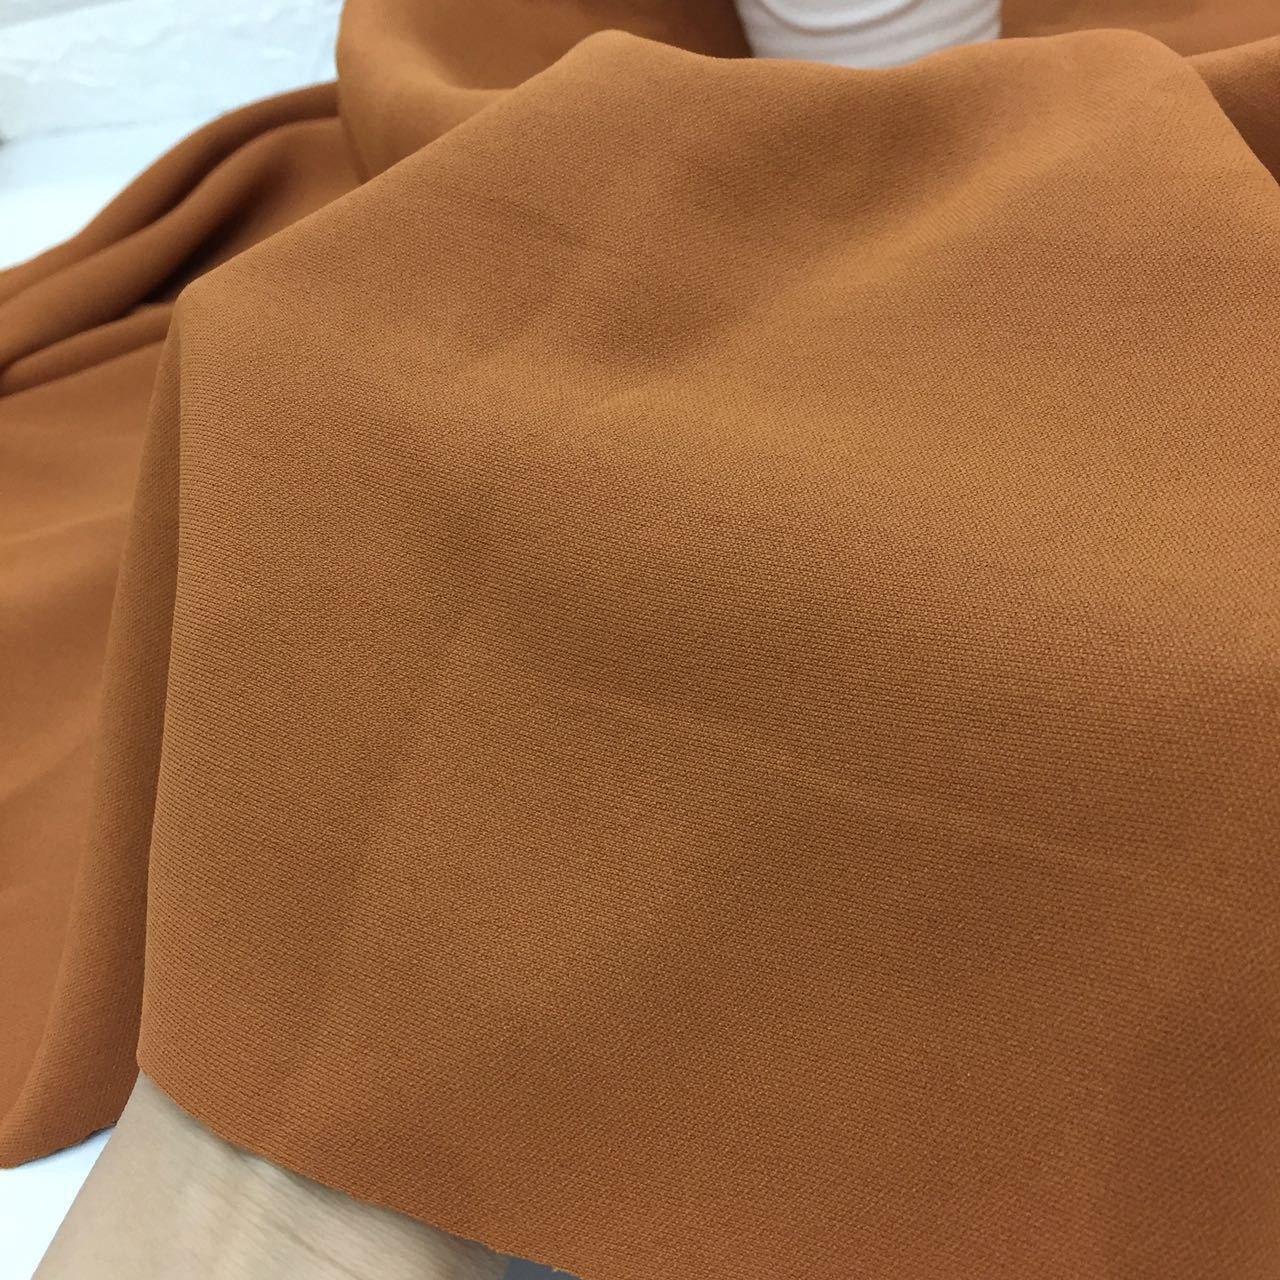 Full Polyester Solid Color Plain Woven Fabric Hand sewn Autumn and Winter Fashion Apparel Fabric Patchwork Textile Material in Fabric from Home Garden